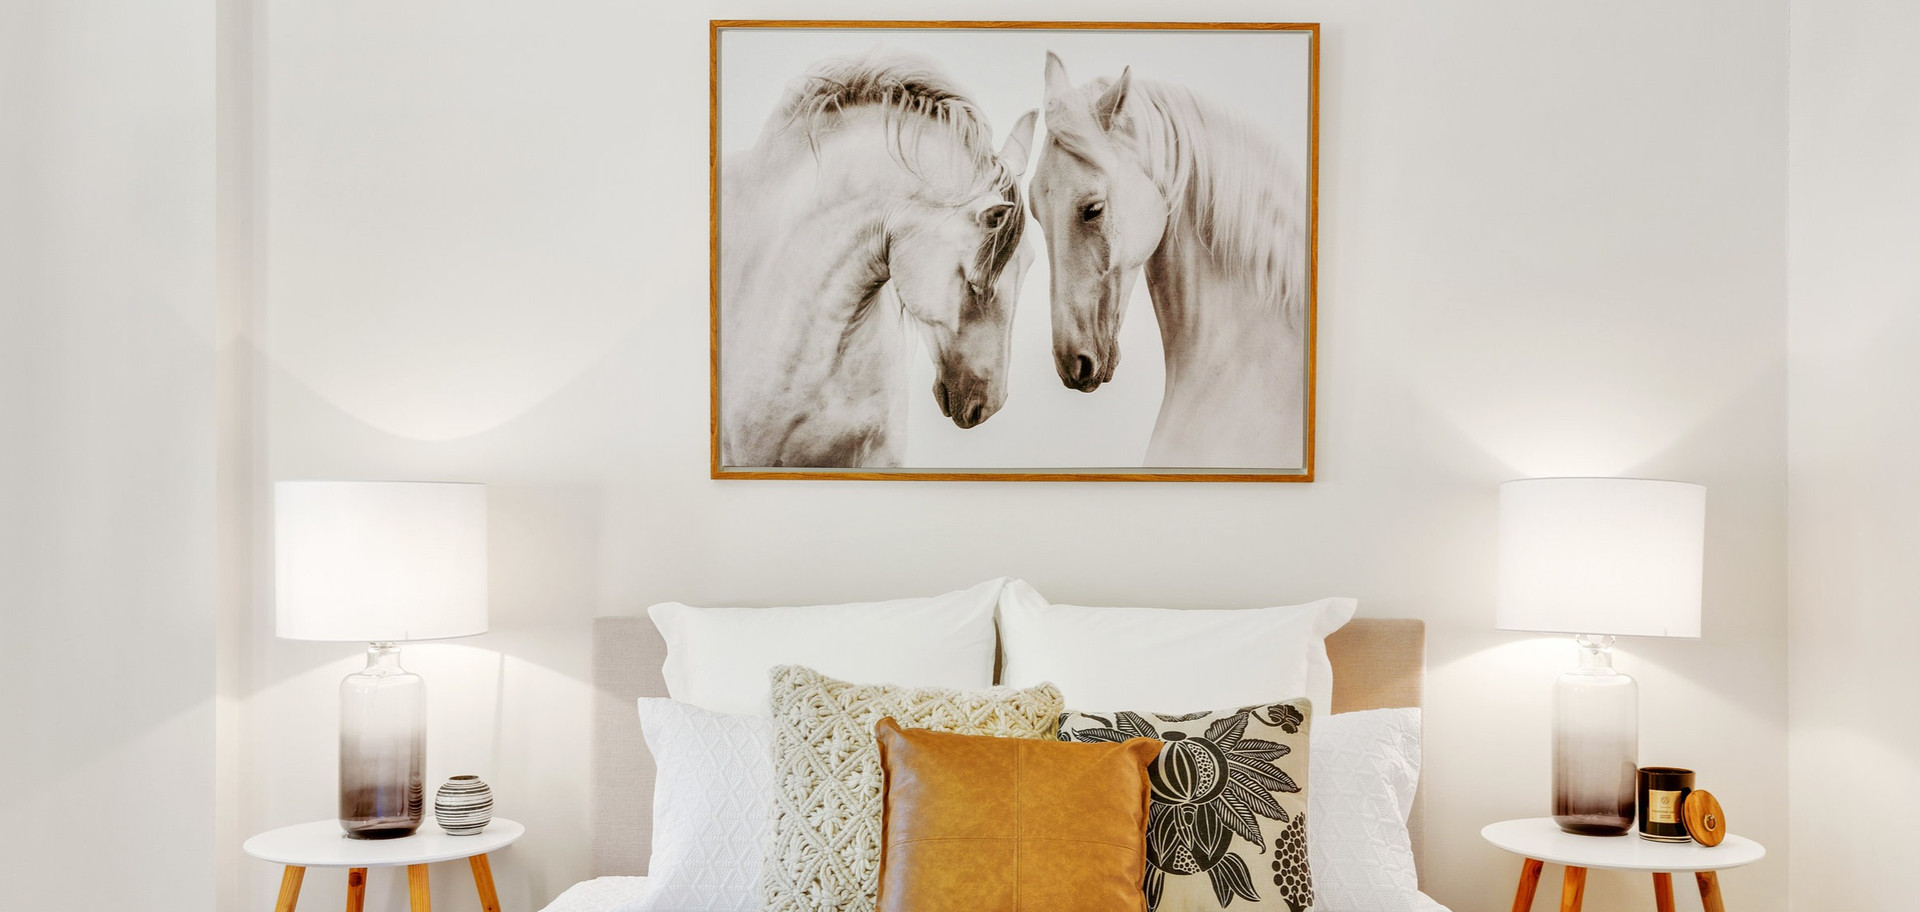 Horses bedroom setting